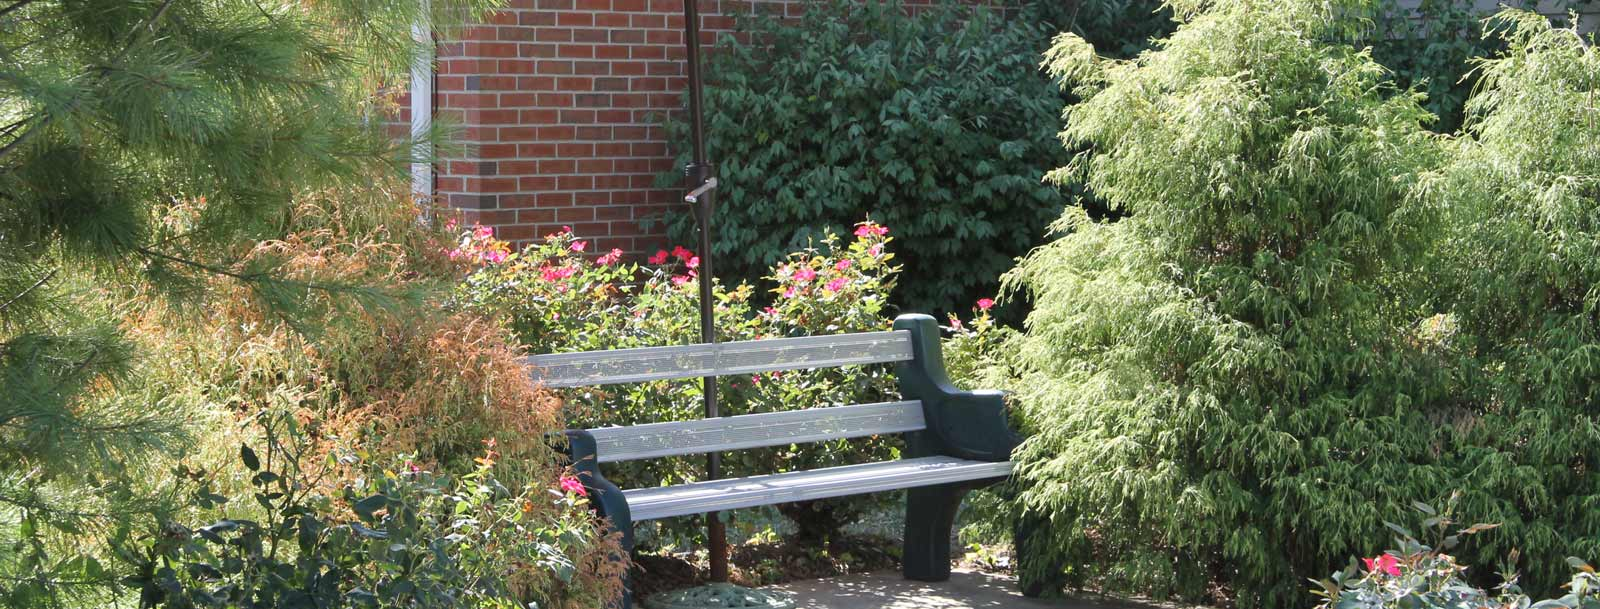 Senior living facility in Farmington has a relaxing bench